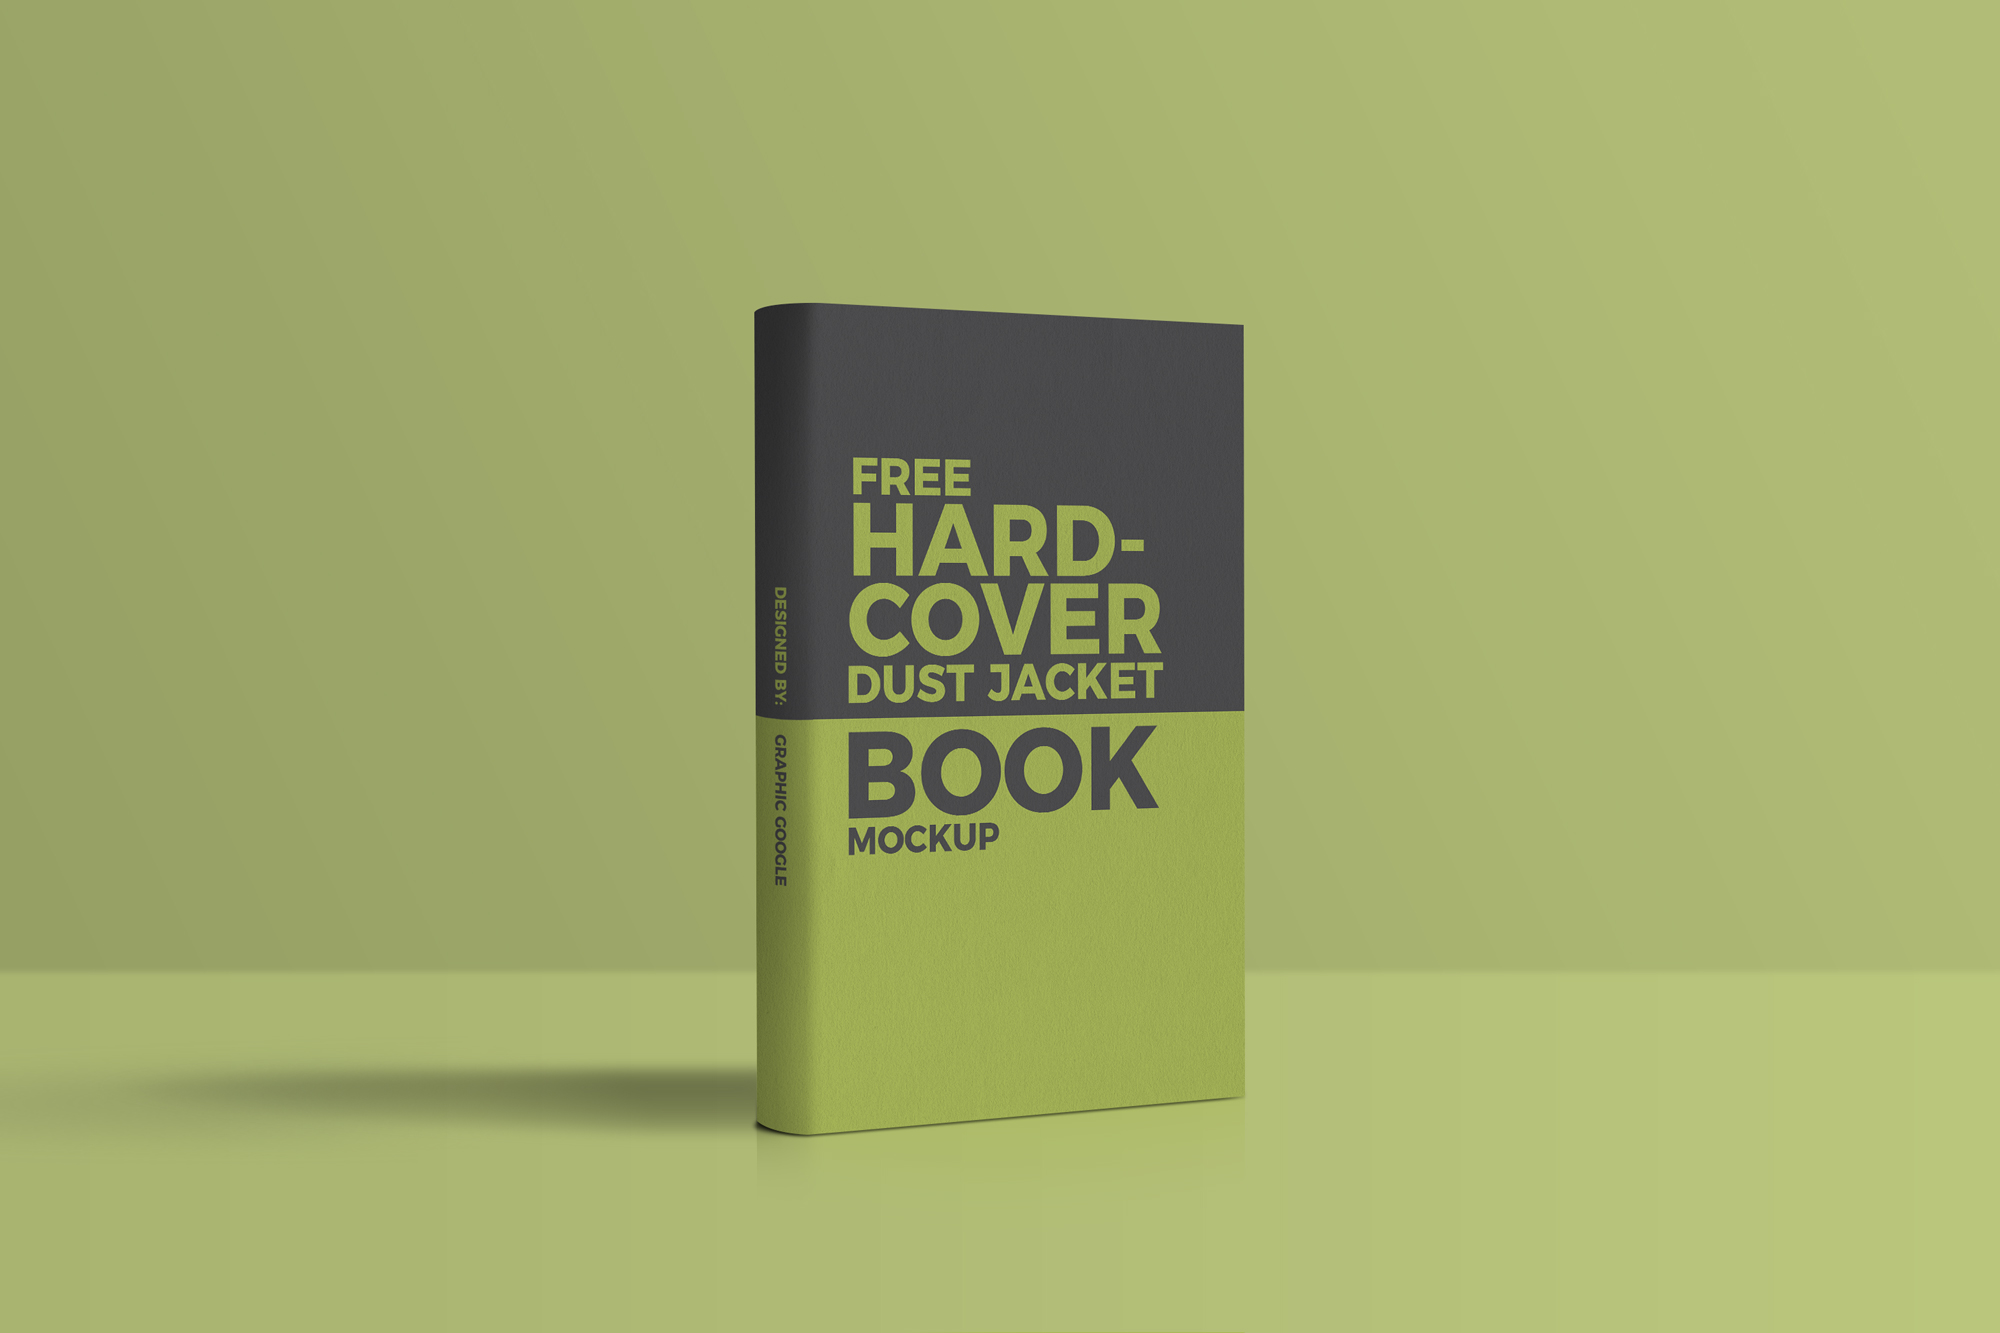 Free-Hardcover-Dust-Jacket-Book-Mockup